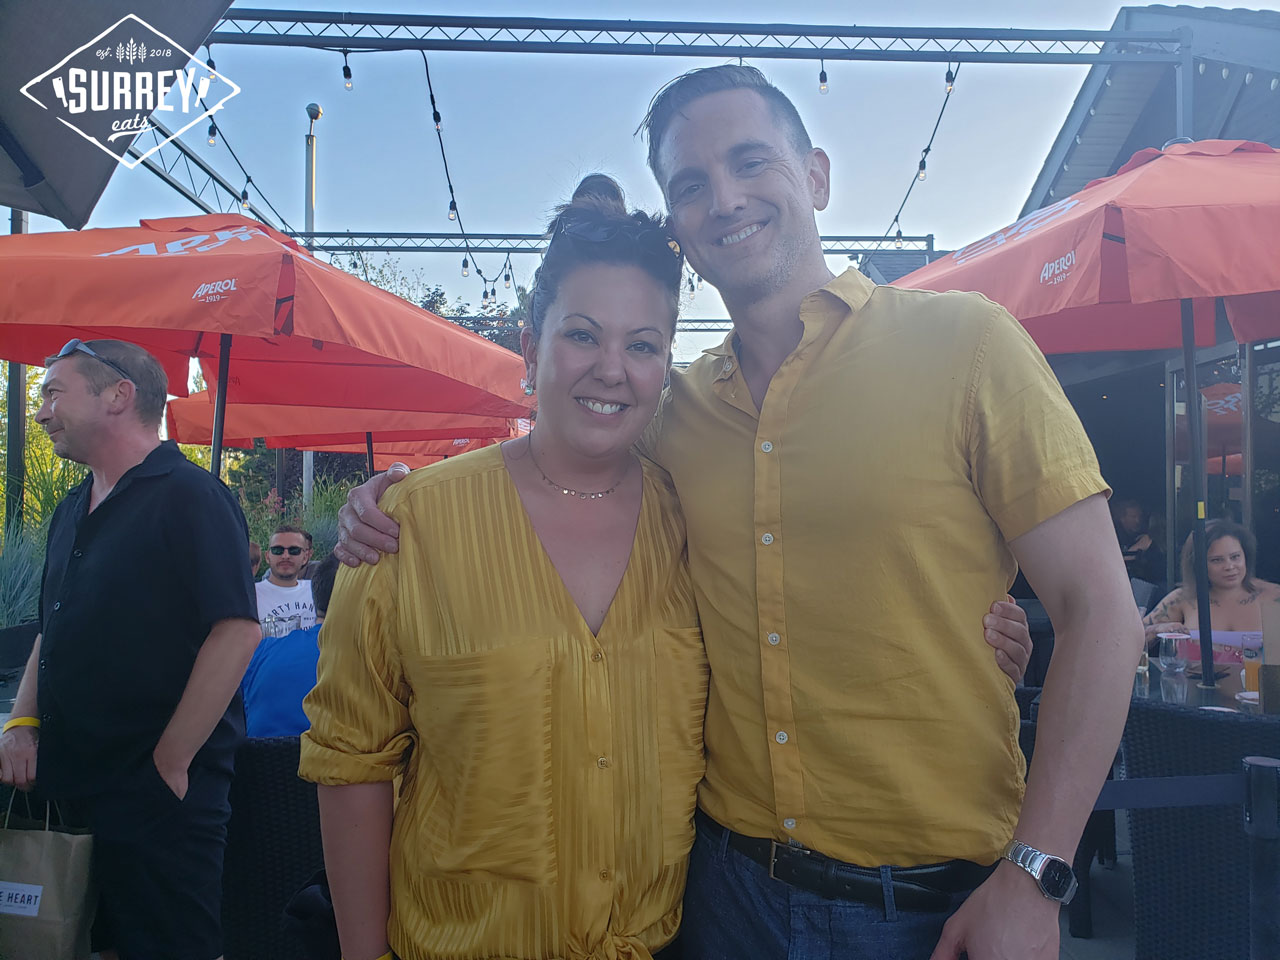 Kamiko from Surrey Eats and Daman from Surrey 604 in yellow shirts